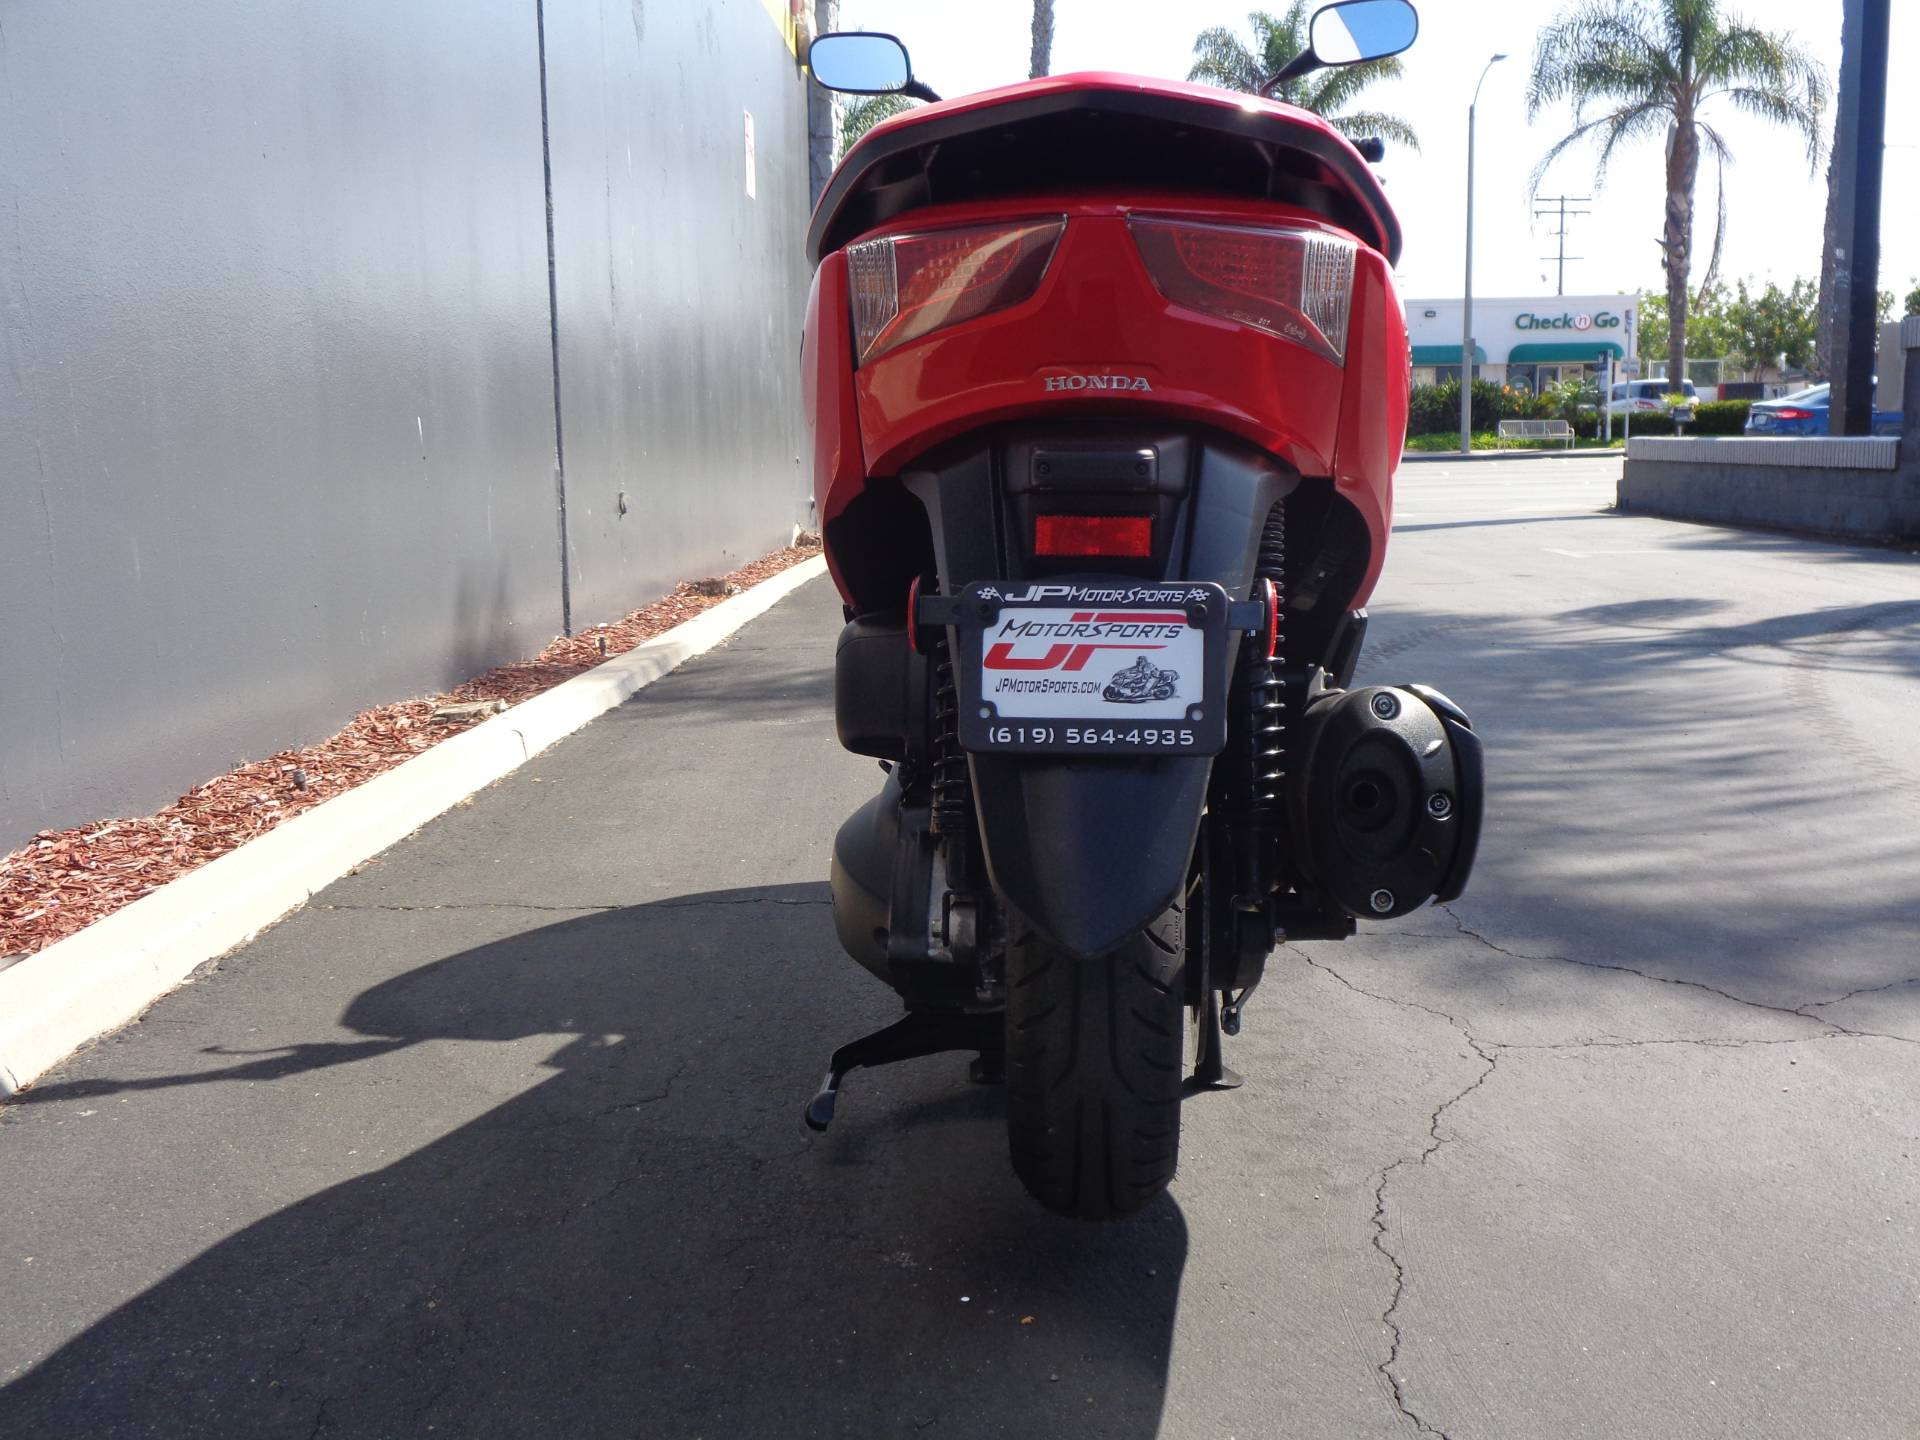 2014 Honda Forza™ ABS in Chula Vista, California - Photo 5